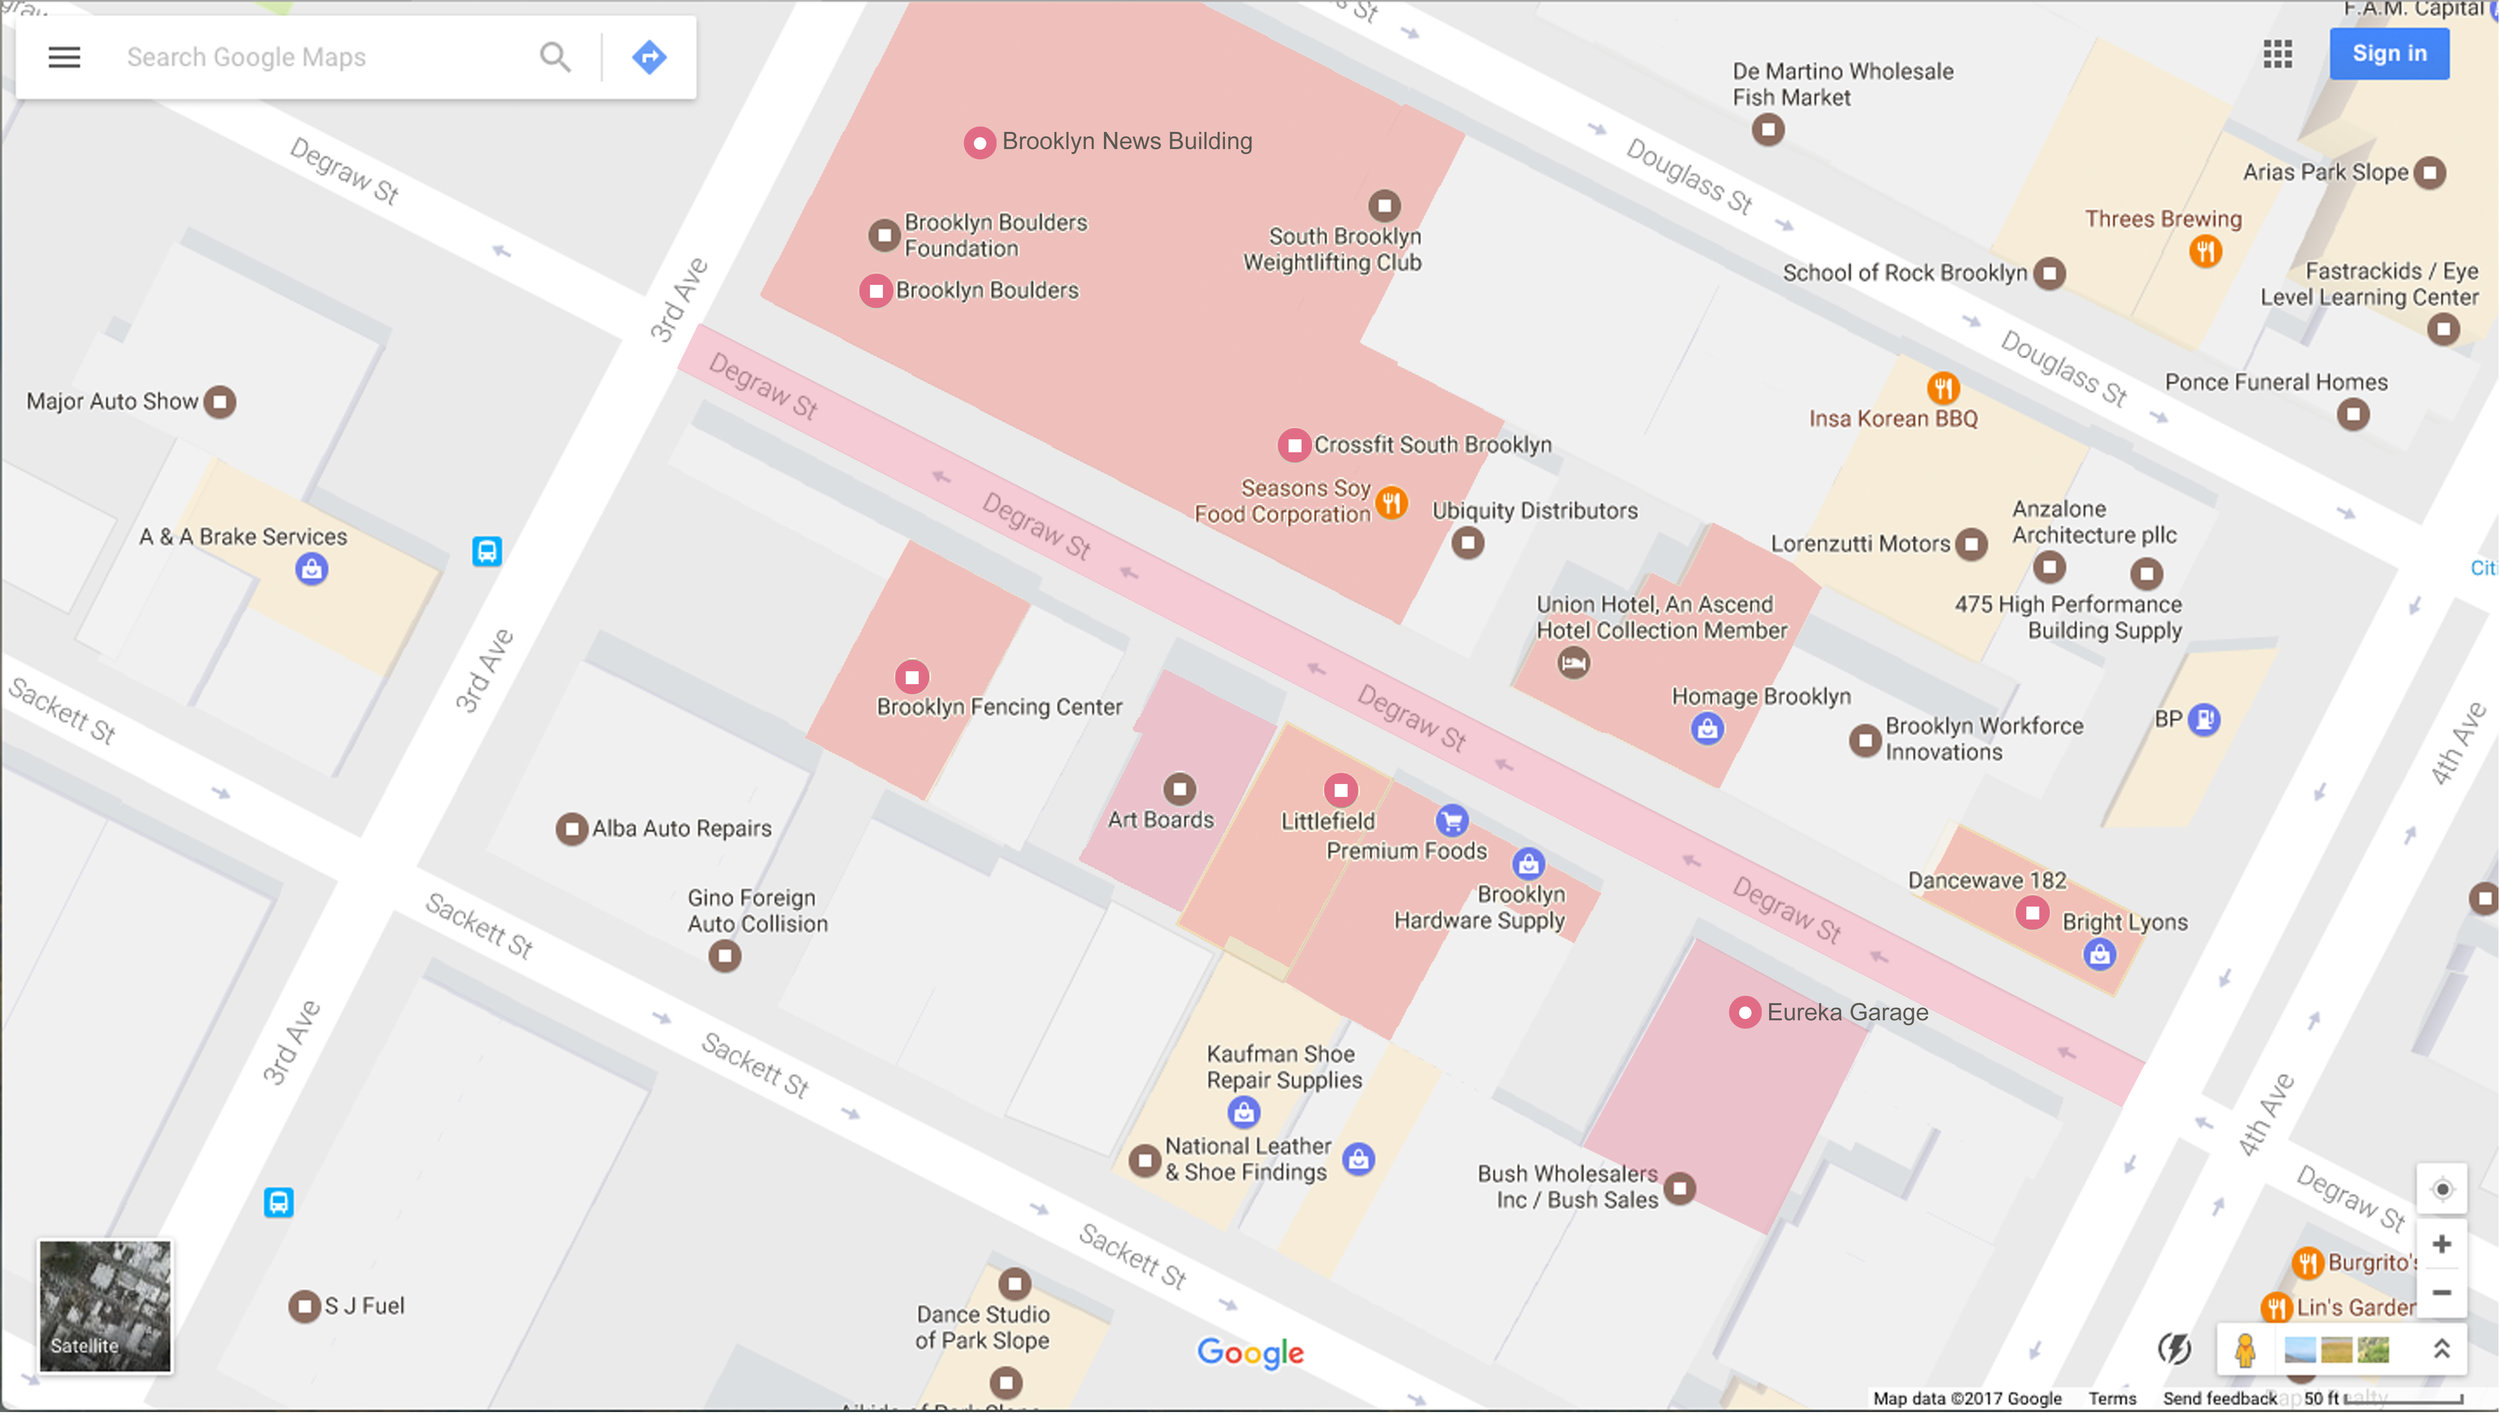 Google Maps Community Preservation Layer on: The pink area shows the community preservation area of interest, through which community residents and others can see the specific questions or data prompts, and input their reviews and comments for particular buildings and uses